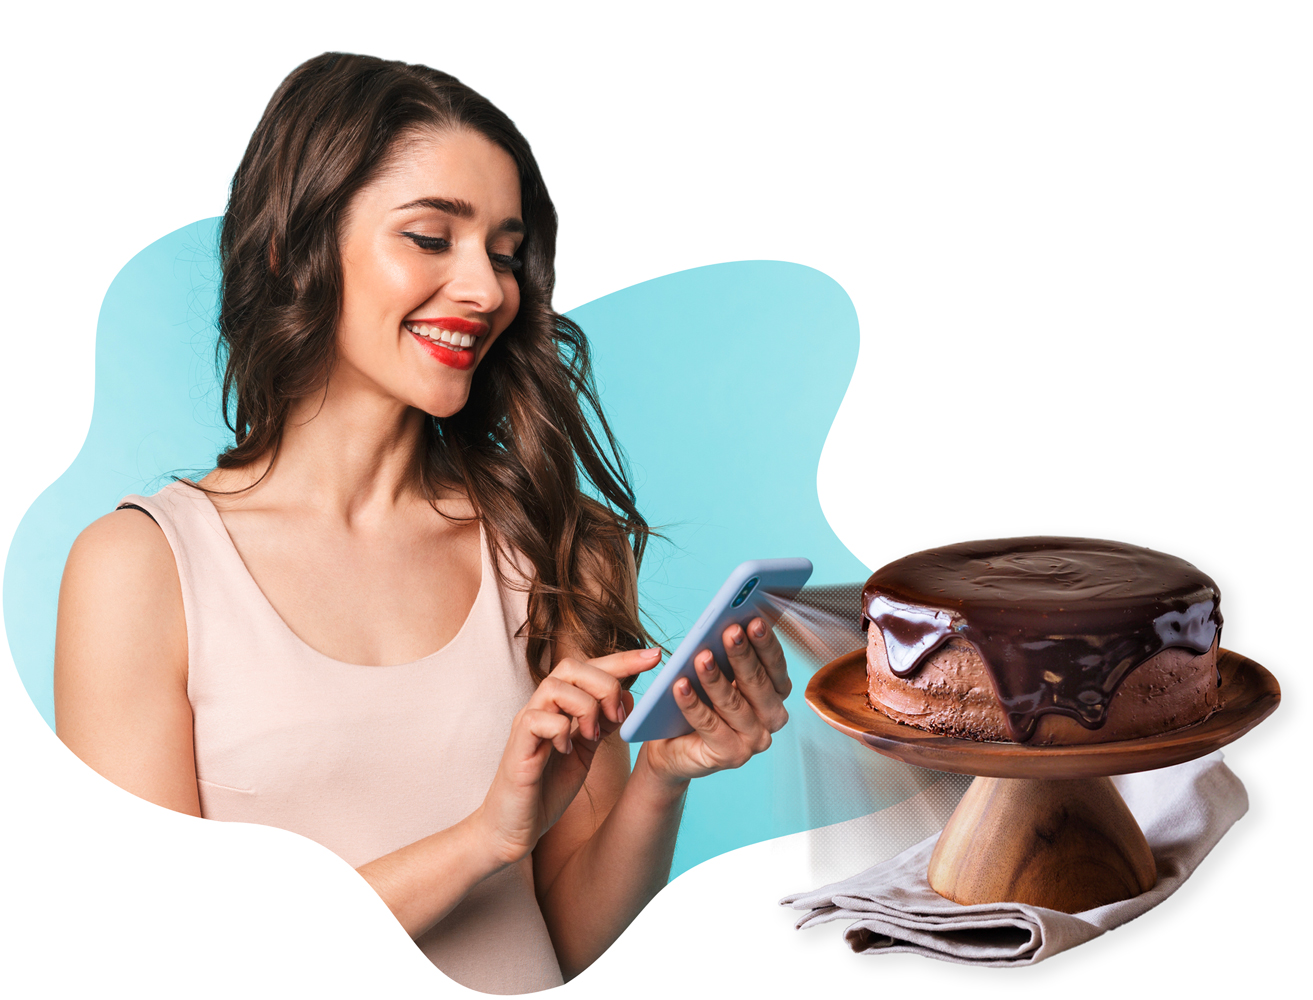 Woman-viewing-chocolate-cake-in-augmented-reality